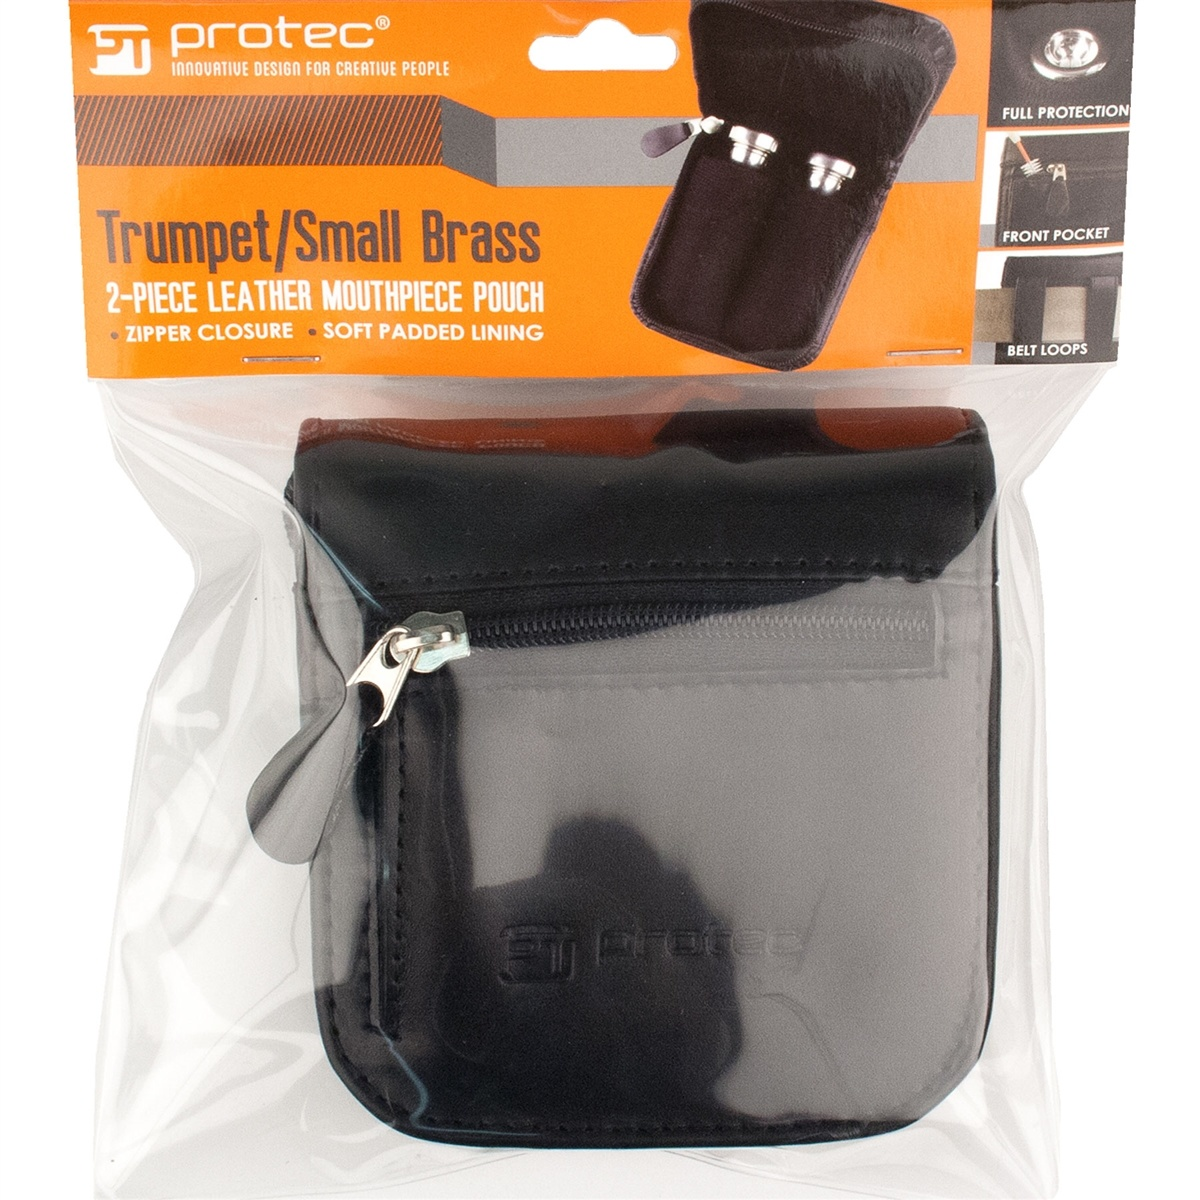 Protec Protec Small Brass Leather Mouthpiece Pouch - 2 Piece